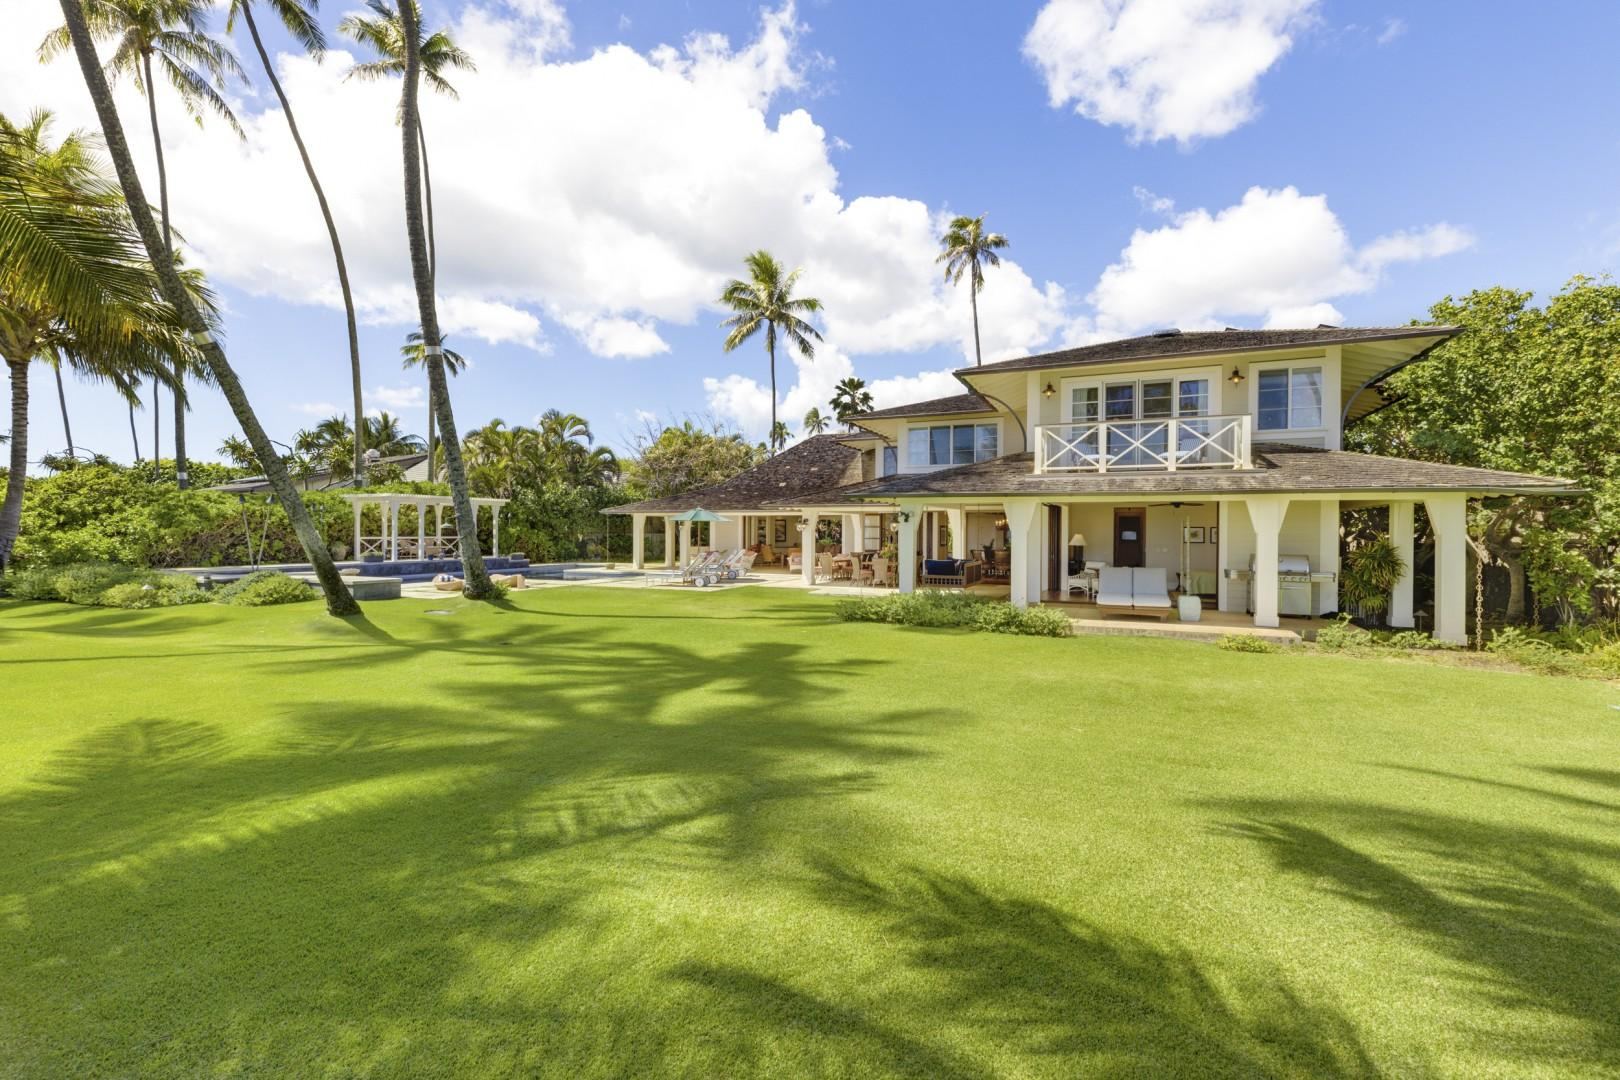 Expansive yard with tropical landscaping